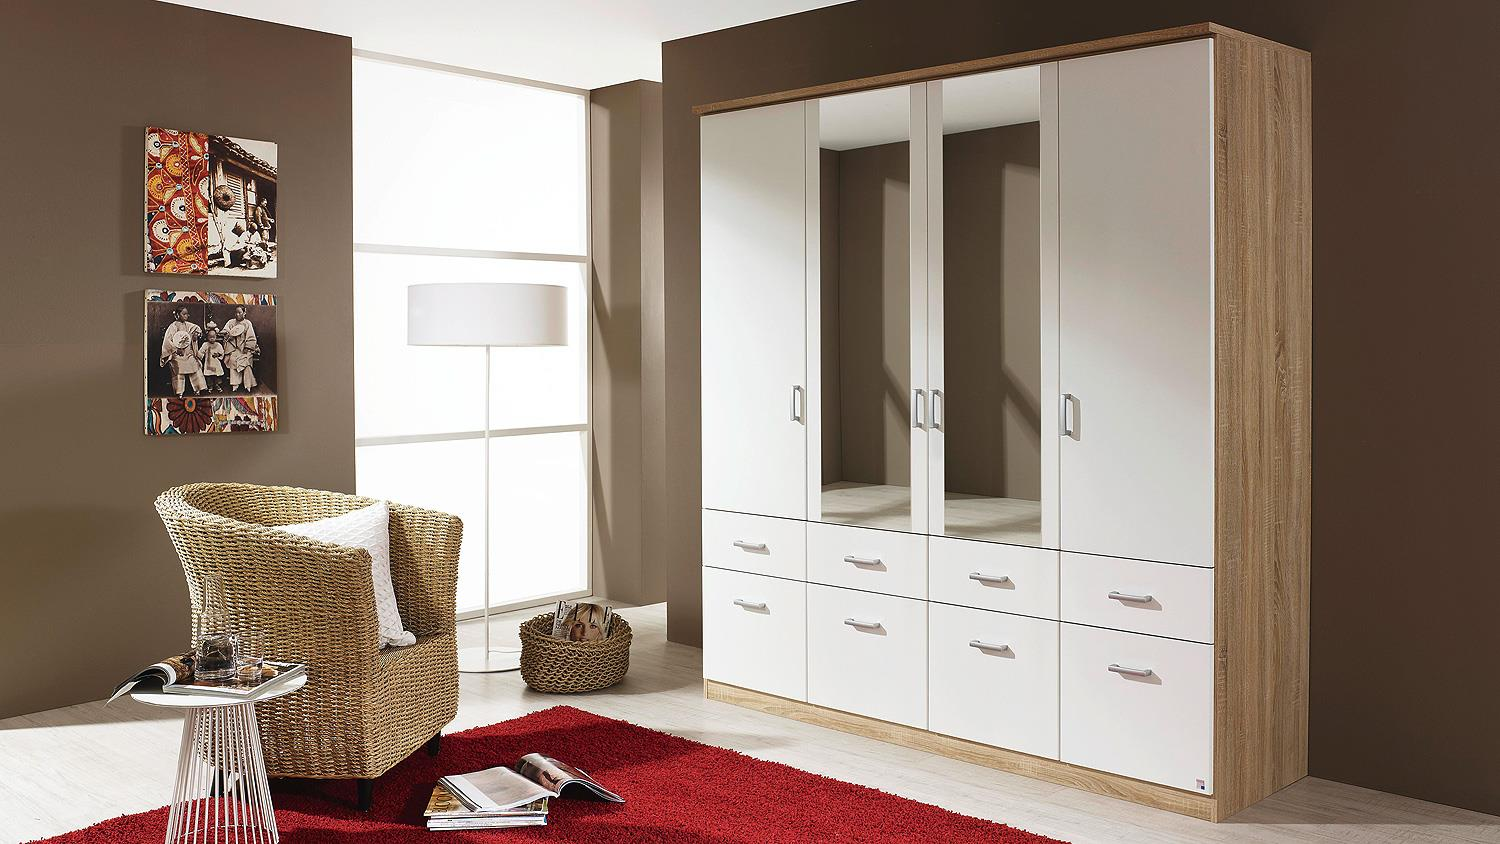 kleiderschrank bremen schrank sonoma eiche wei spiegel 181. Black Bedroom Furniture Sets. Home Design Ideas